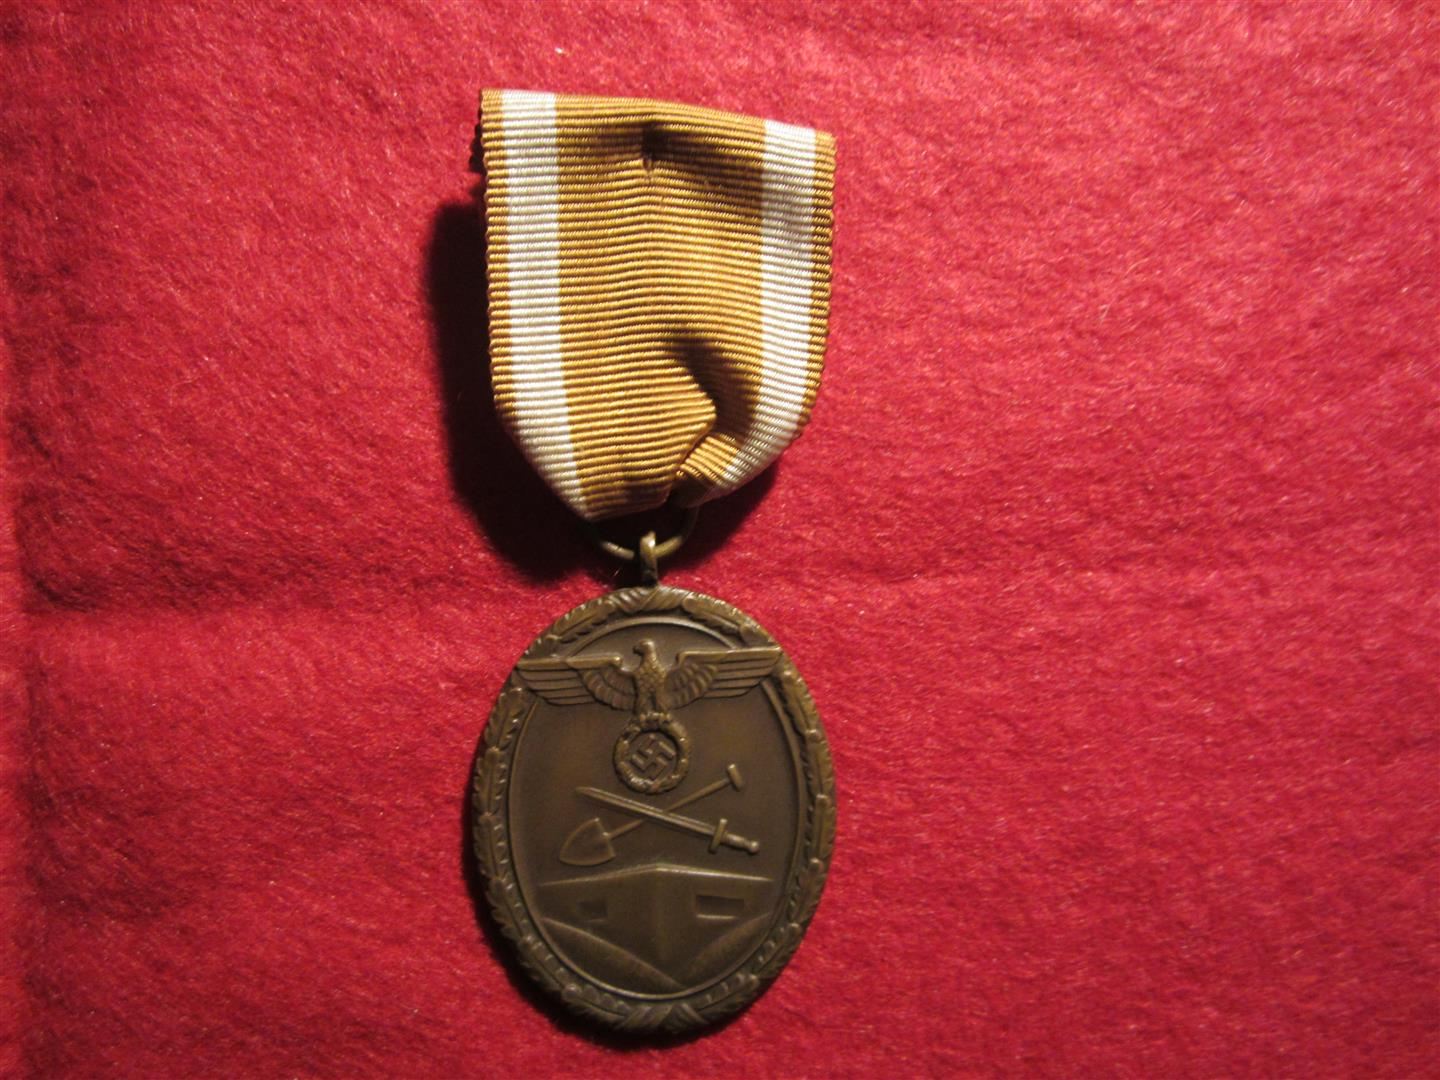 WW2 German Westwall Medal